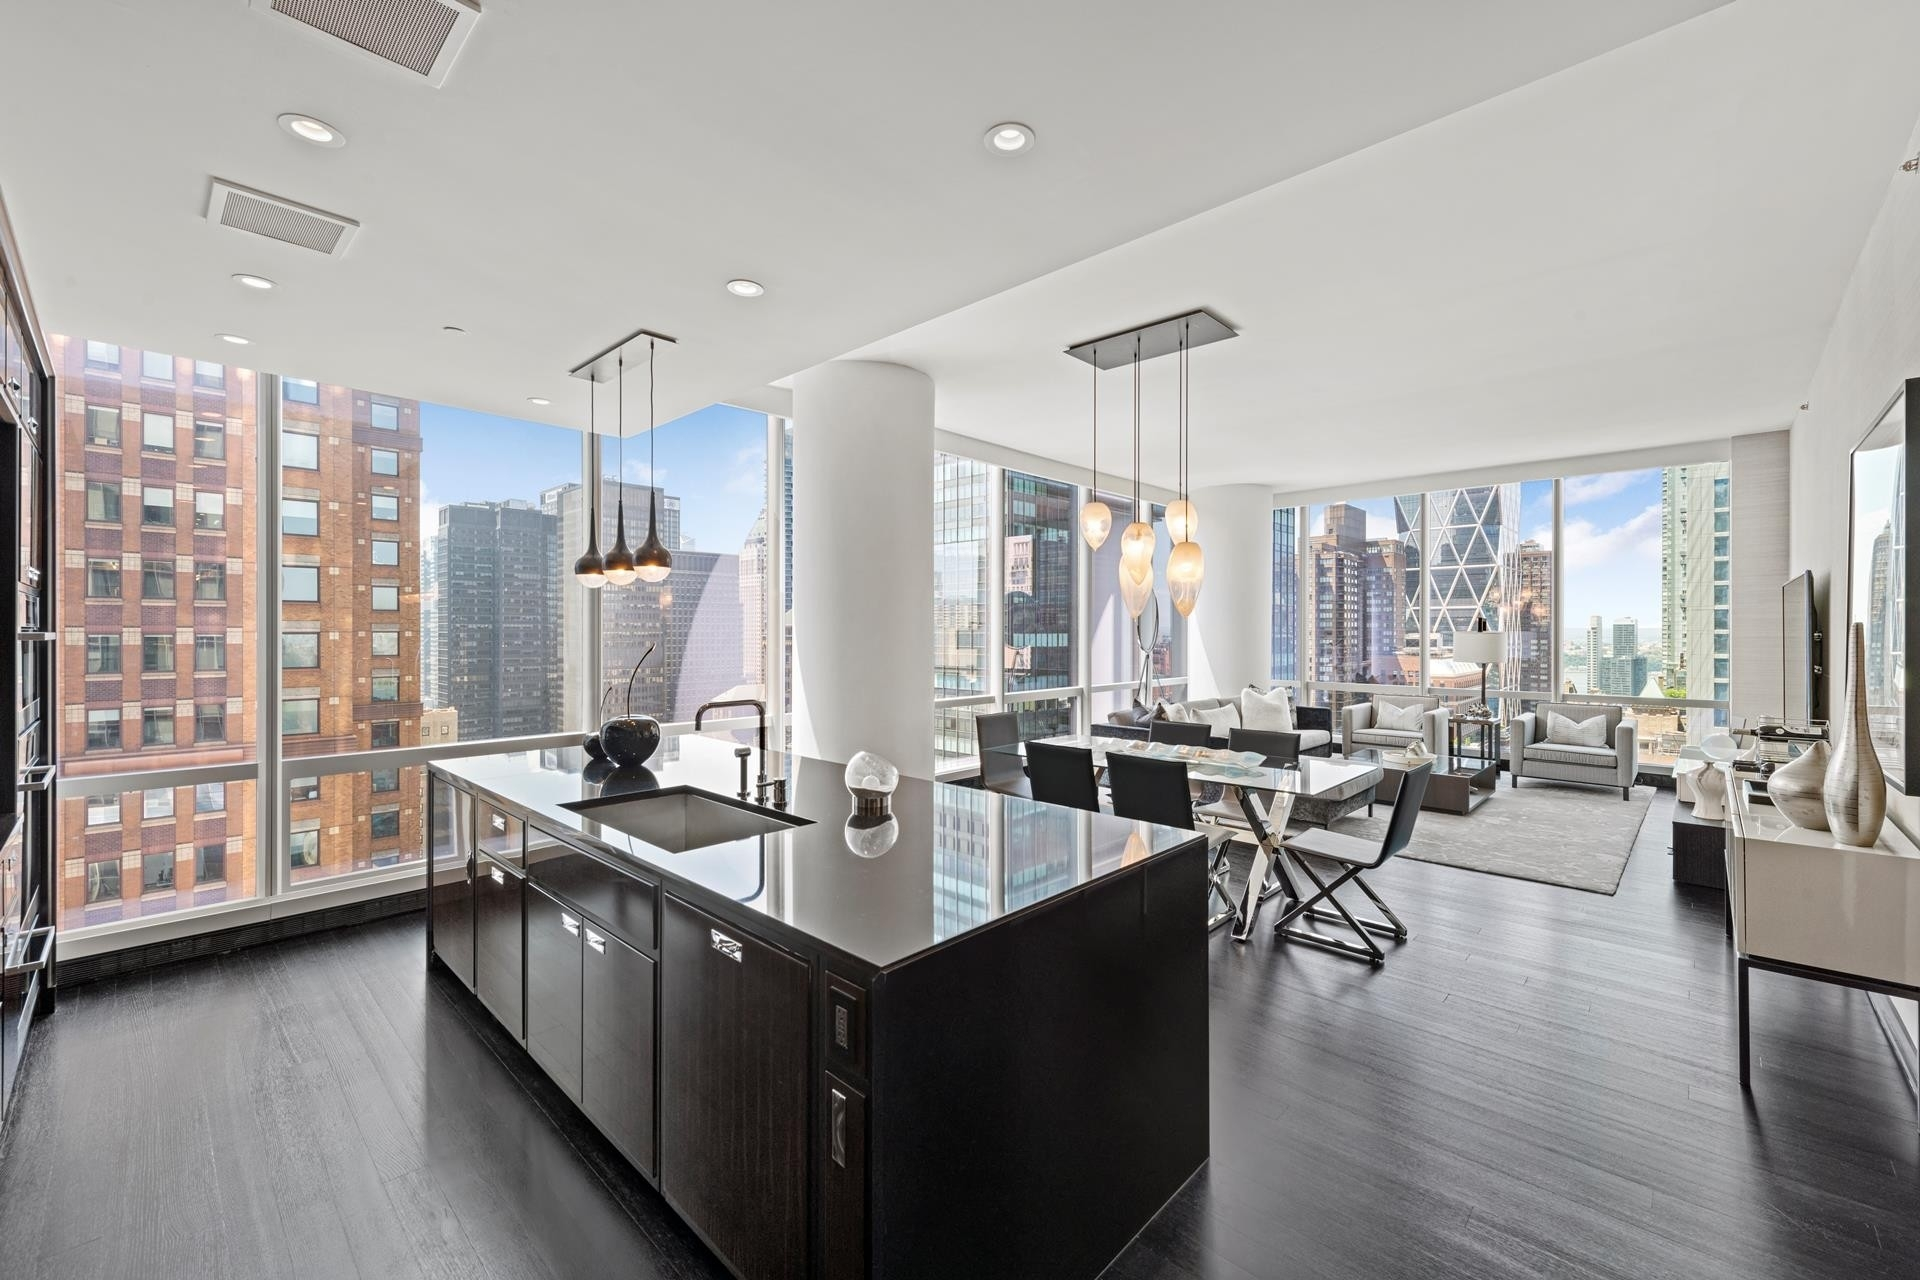 Property at One57, 157 West 57th St, 37C Midtown West, New York, NY 10019